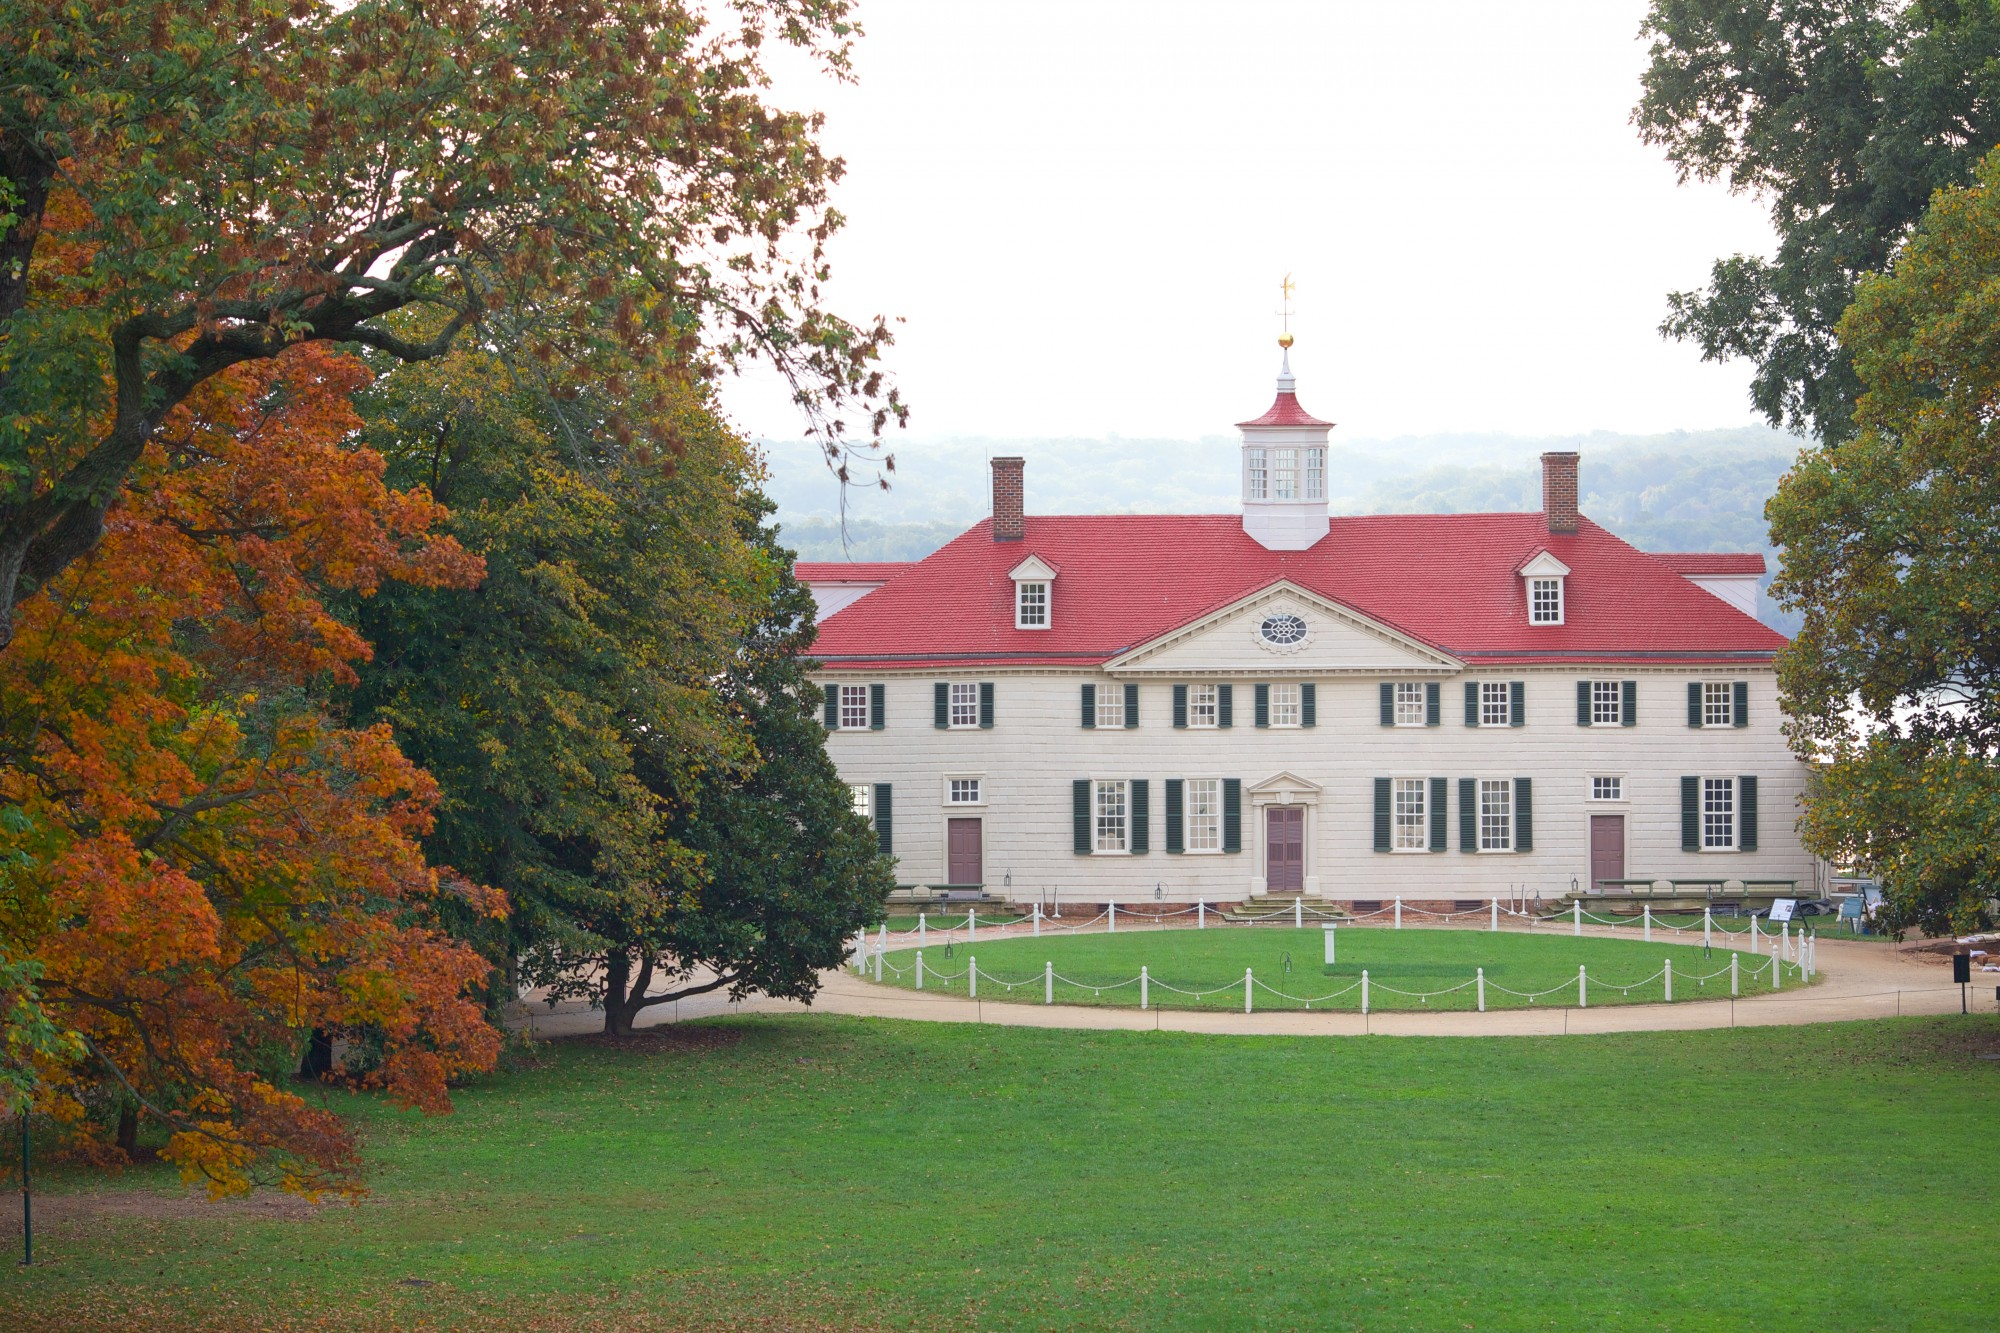 ten facts about the mansion · george washington s mount vernon